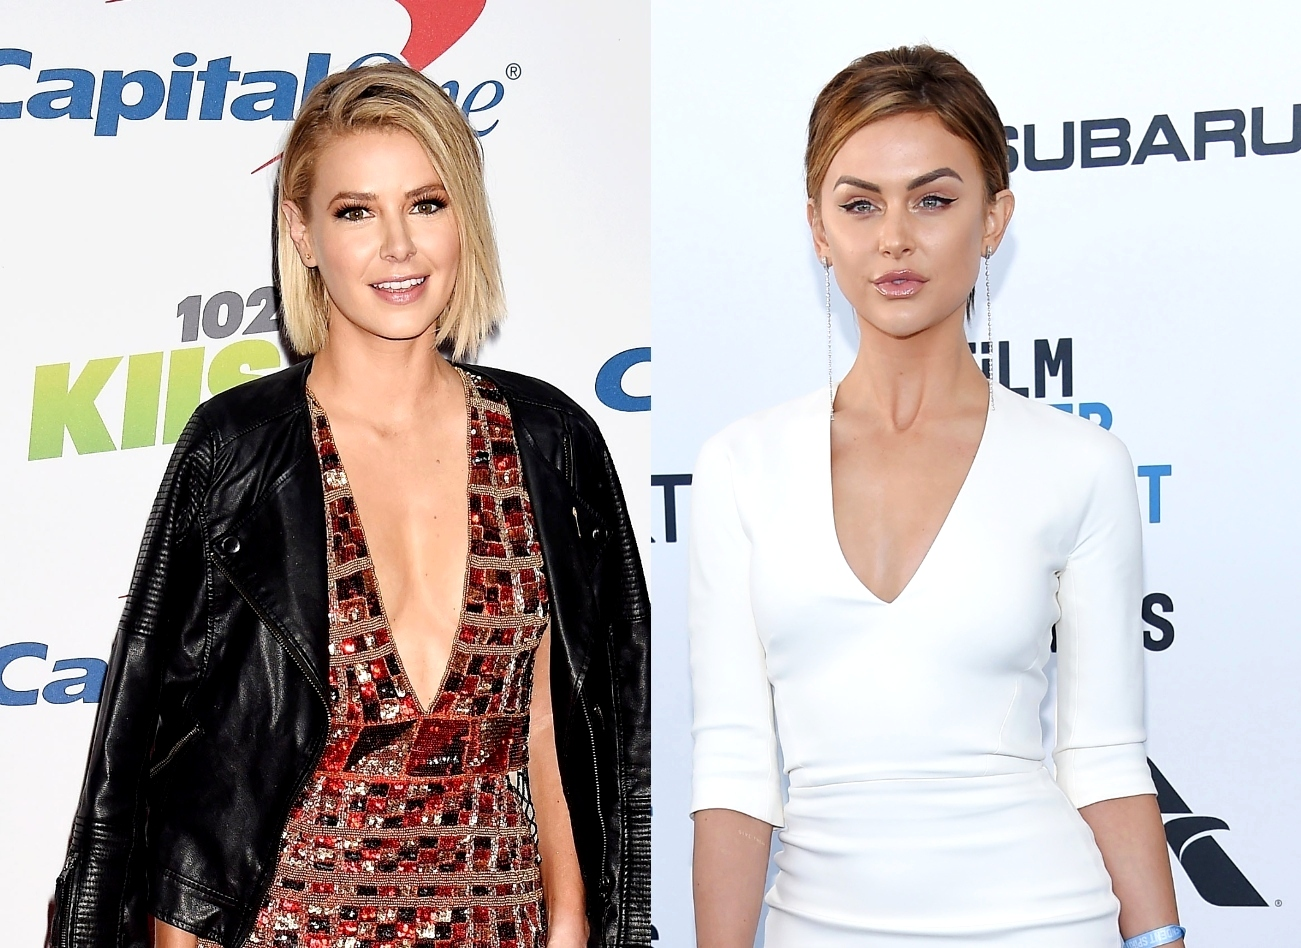 """Vanderpump Rules' Ariana Madix Confirms She and Lala Kent Are """"No Longer Friends,"""" Says Premiere Comments Were the """"Straw That Broke the Camel's Back"""""""